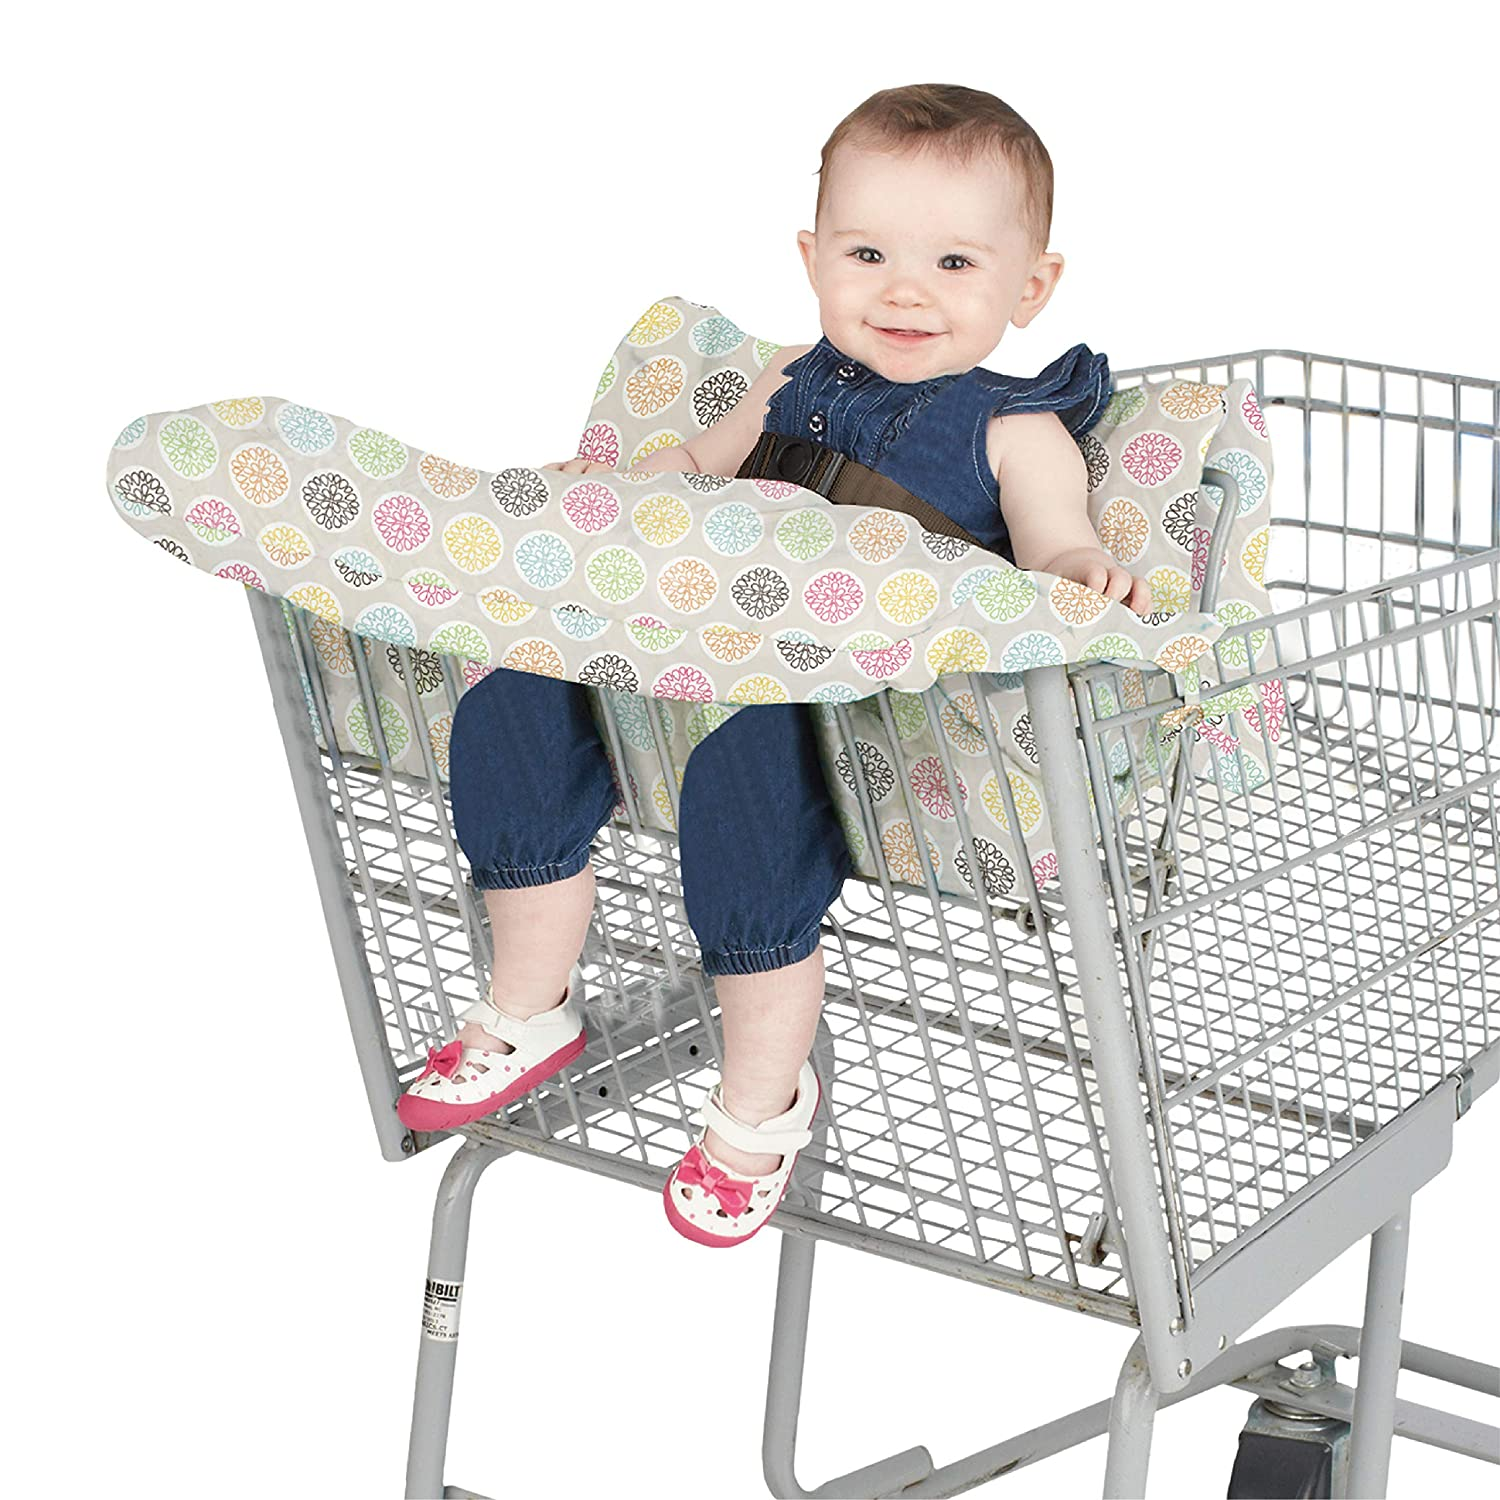 Outstanding Nuby Flower Shopping Cart Cover High Chair Cover High Chair Cushion Baby Grocery Cart Cover Infant High Chair Cover Safety Harness Cart Cover Evergreenethics Interior Chair Design Evergreenethicsorg